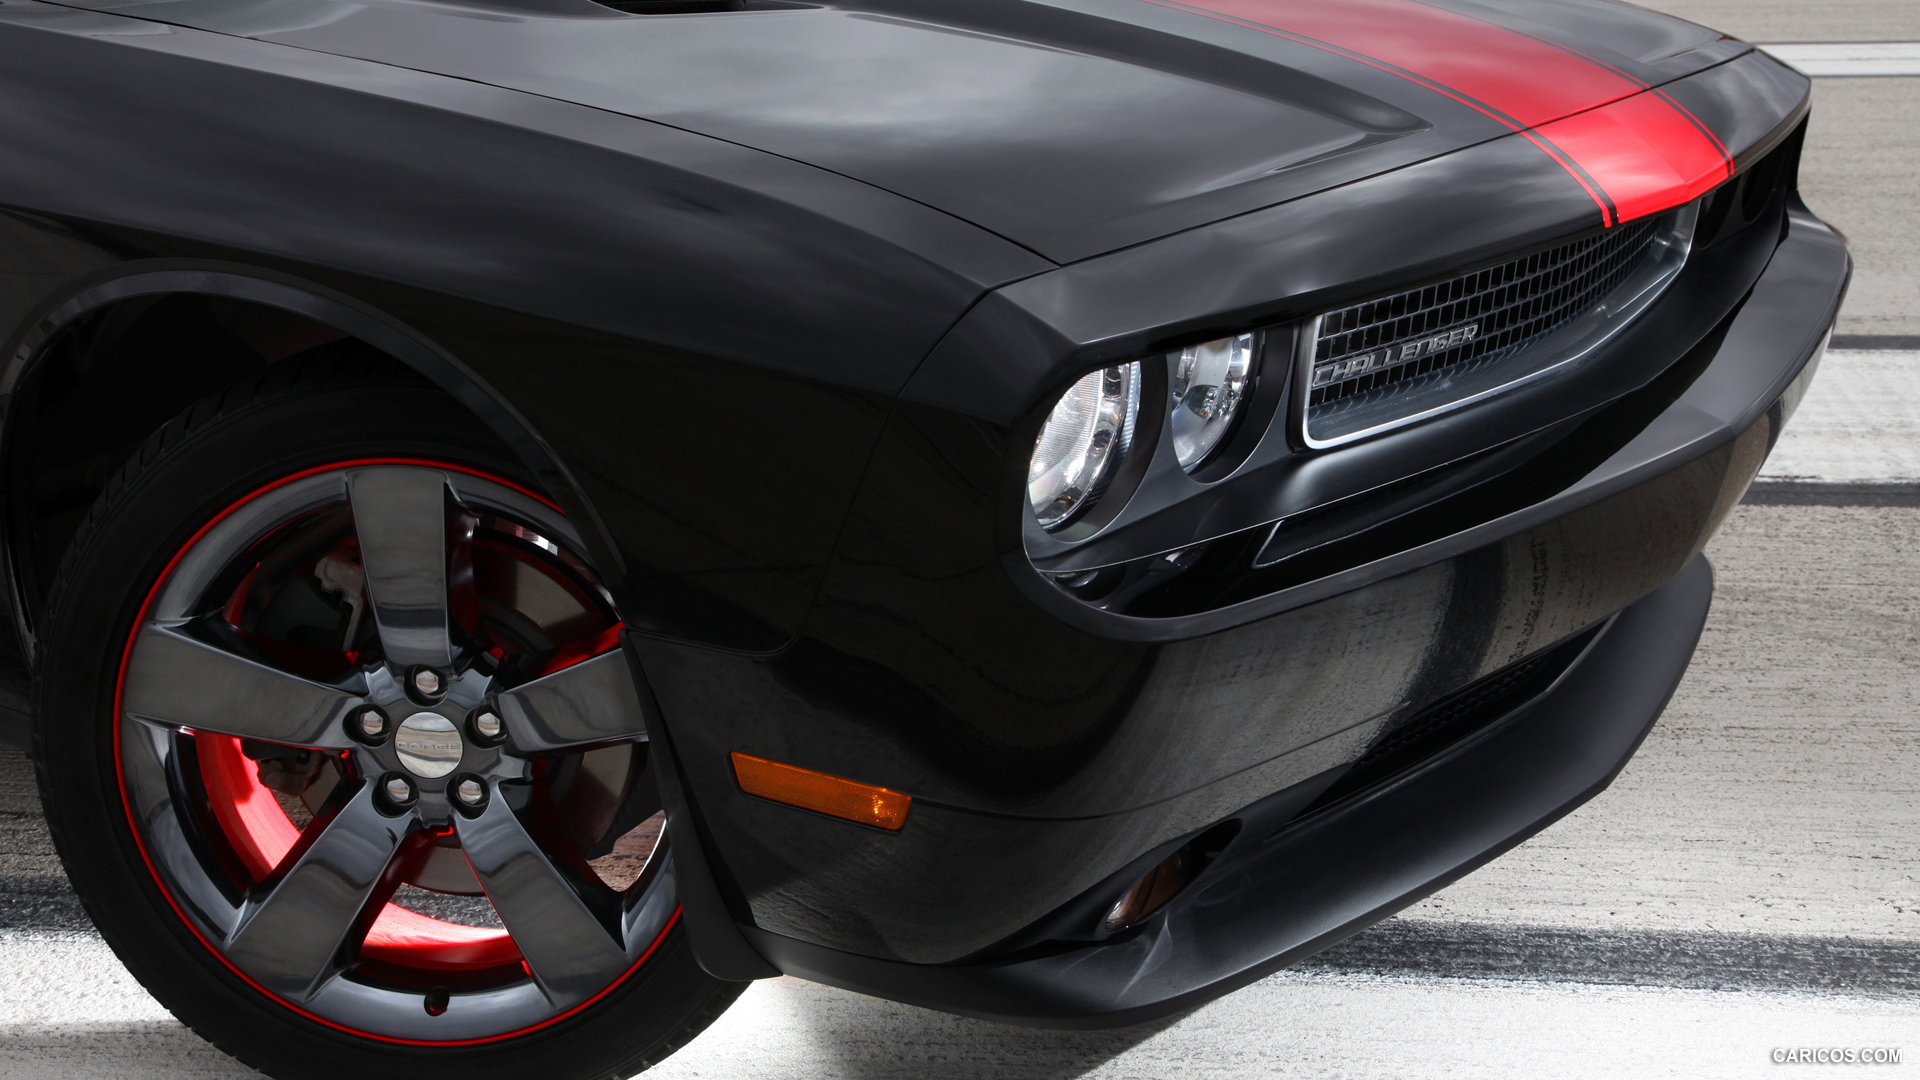 1920x1080 - Dodge Challenger Rallye Wallpapers 30